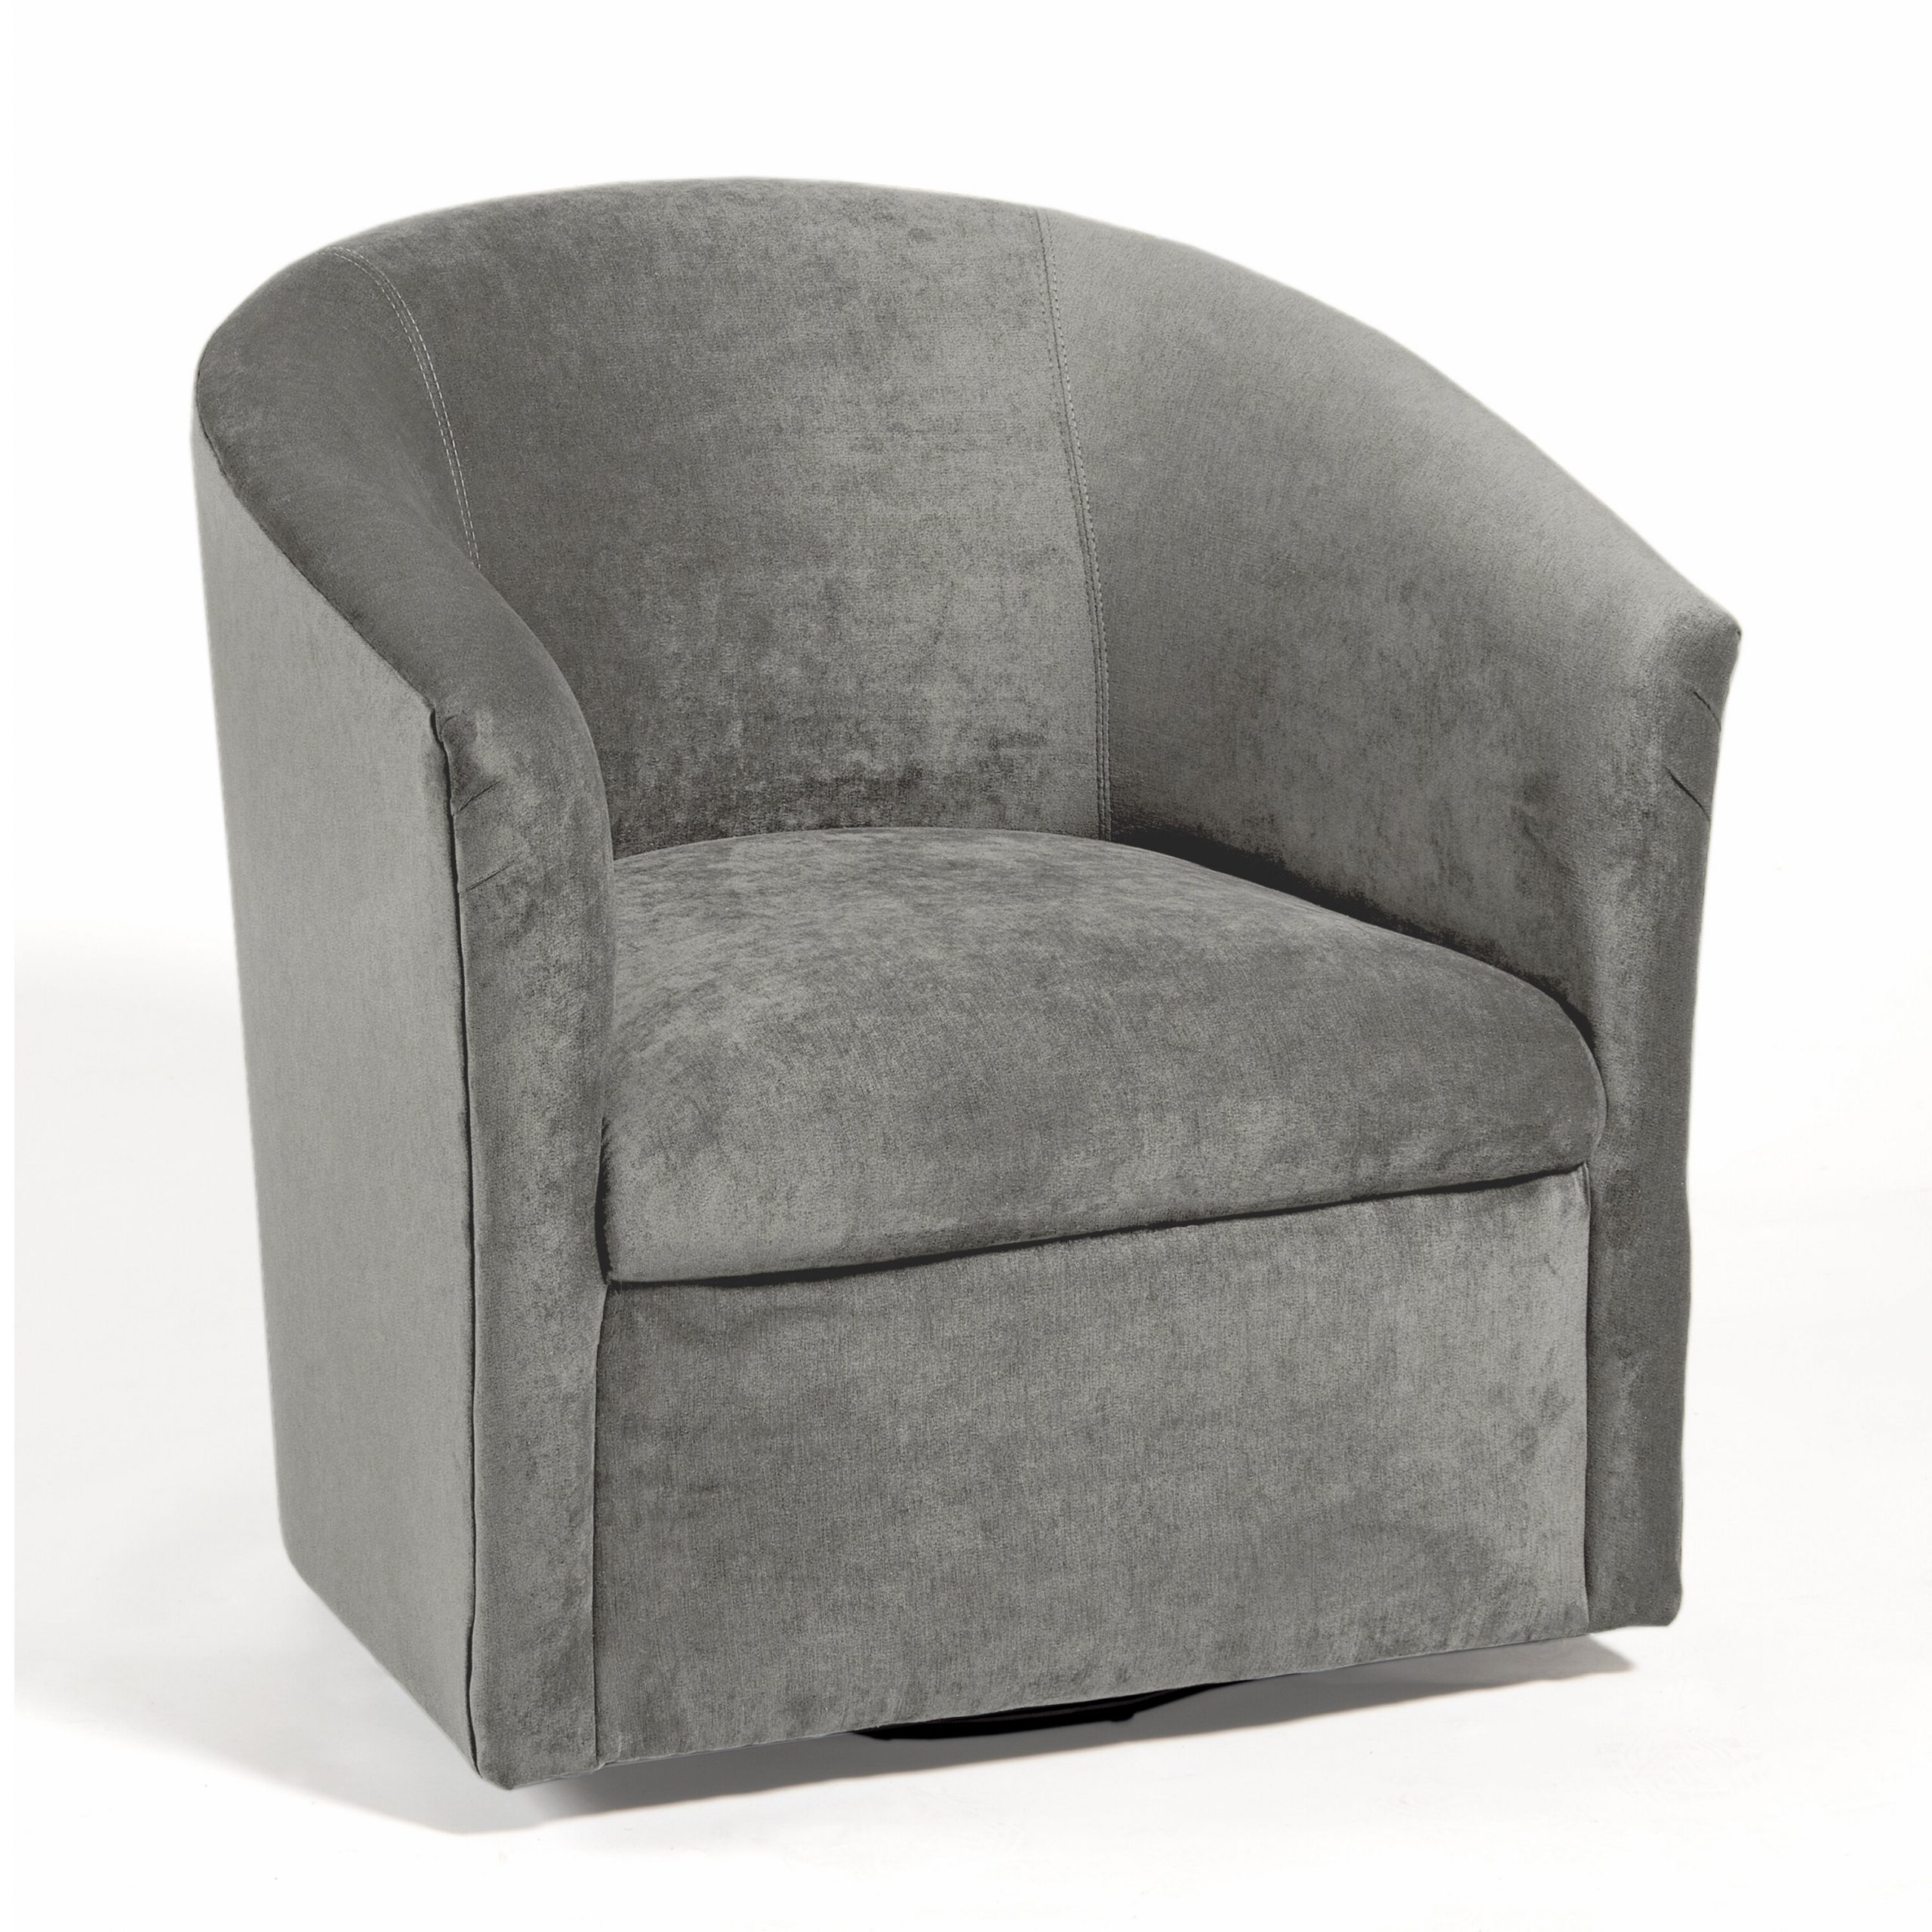 Wayfair Pertaining To Dorcaster Barrel Chairs (View 3 of 20)